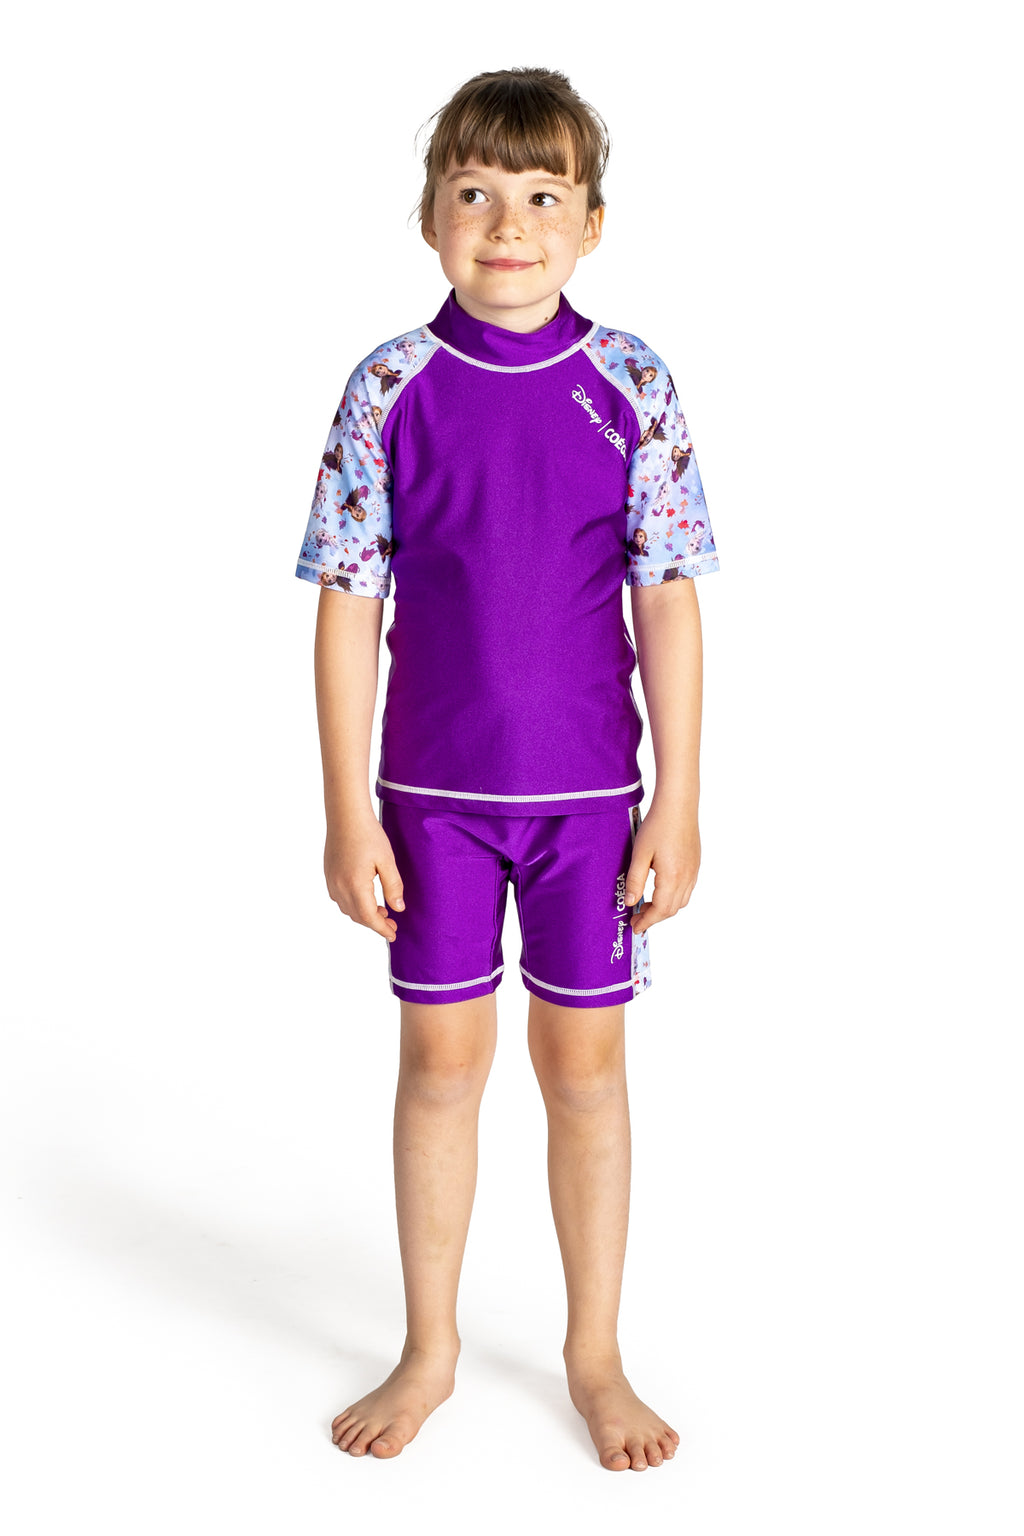 COEGA Disney Girls Kids Swim Suit - Two Piece